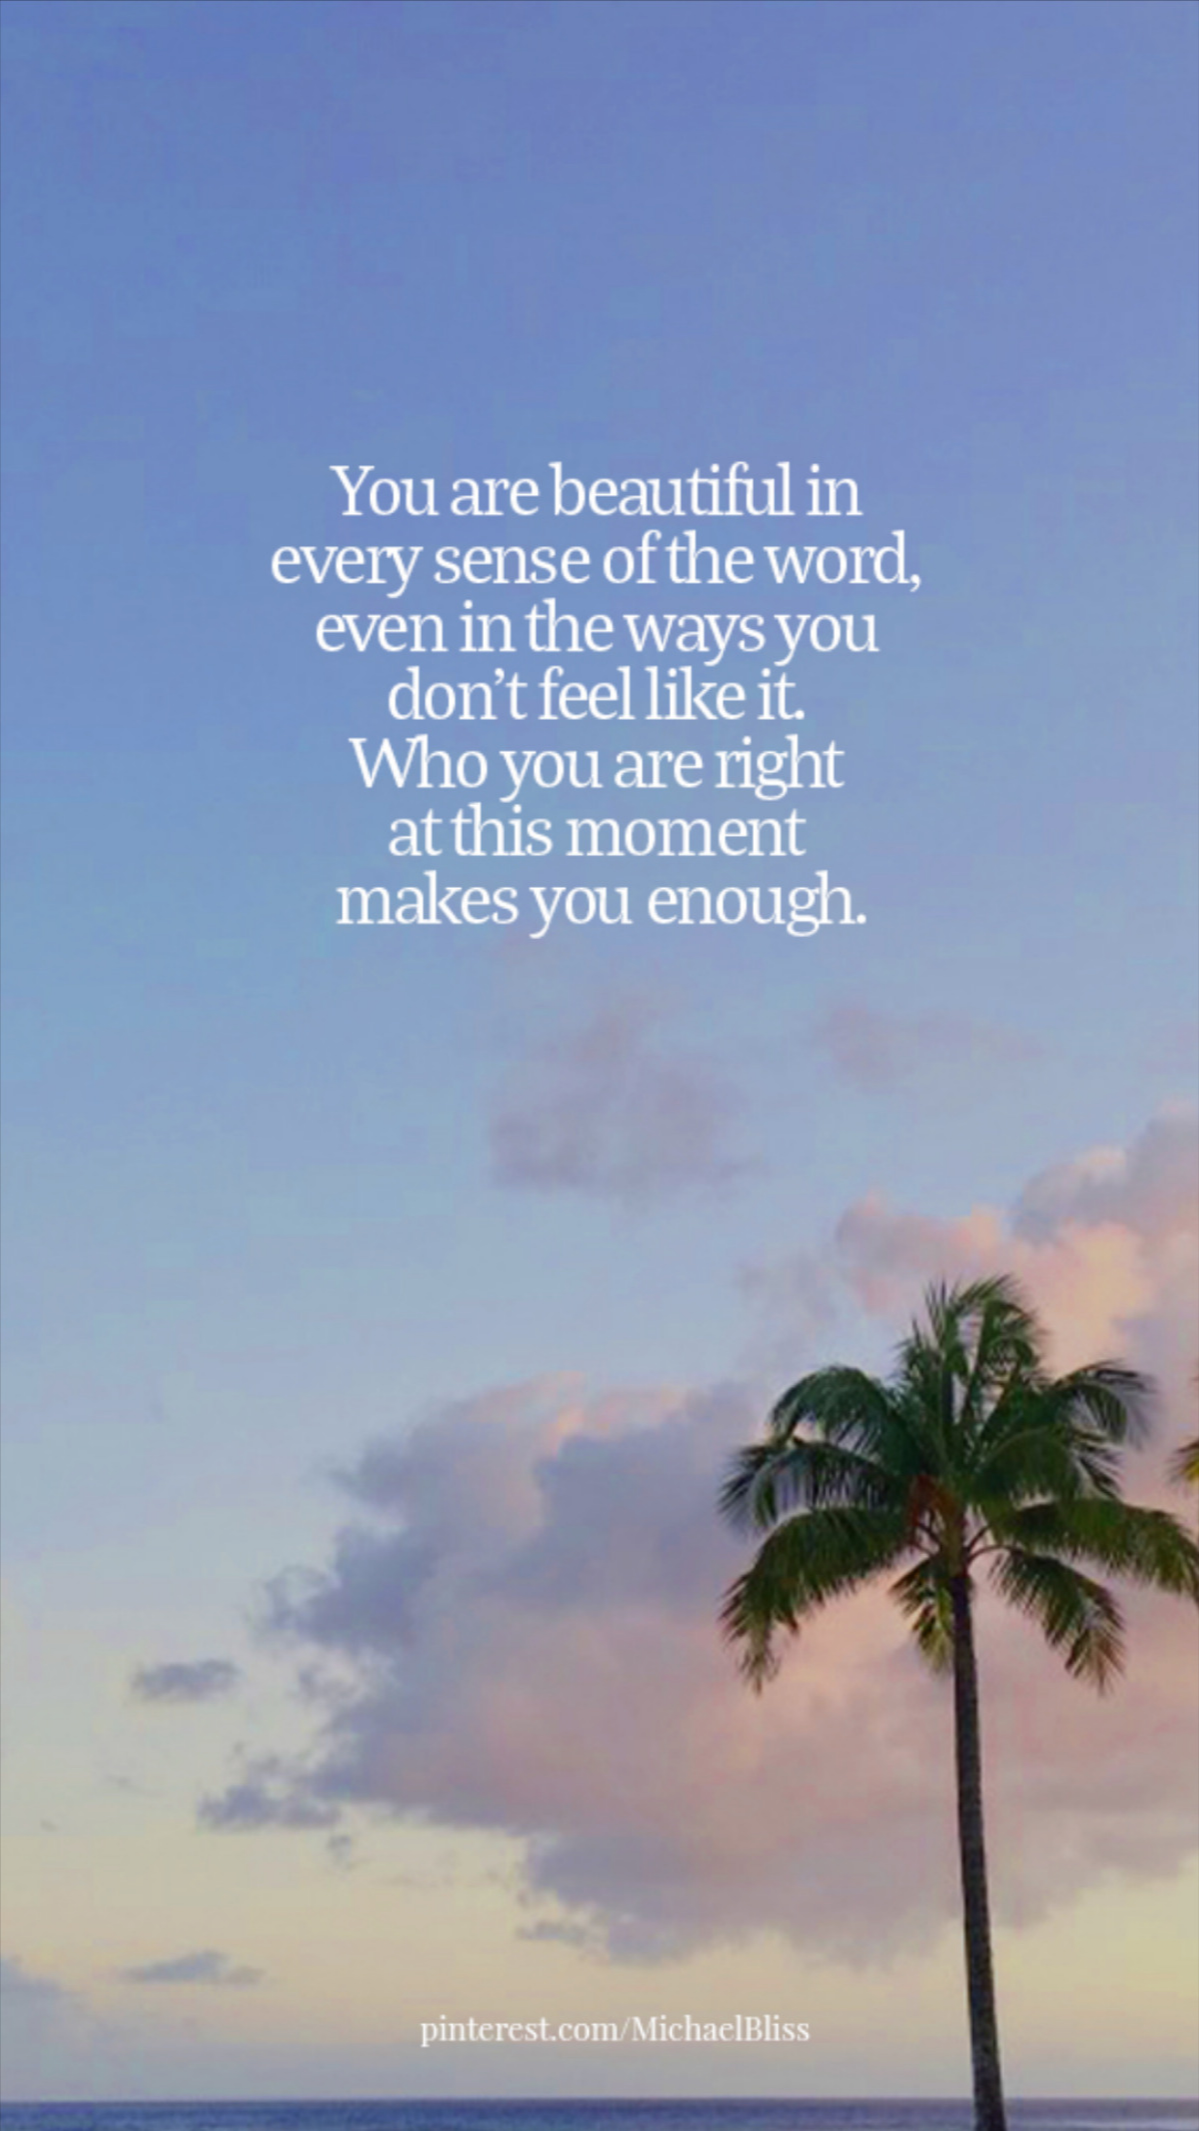 You are beautiful in every sense of the word.